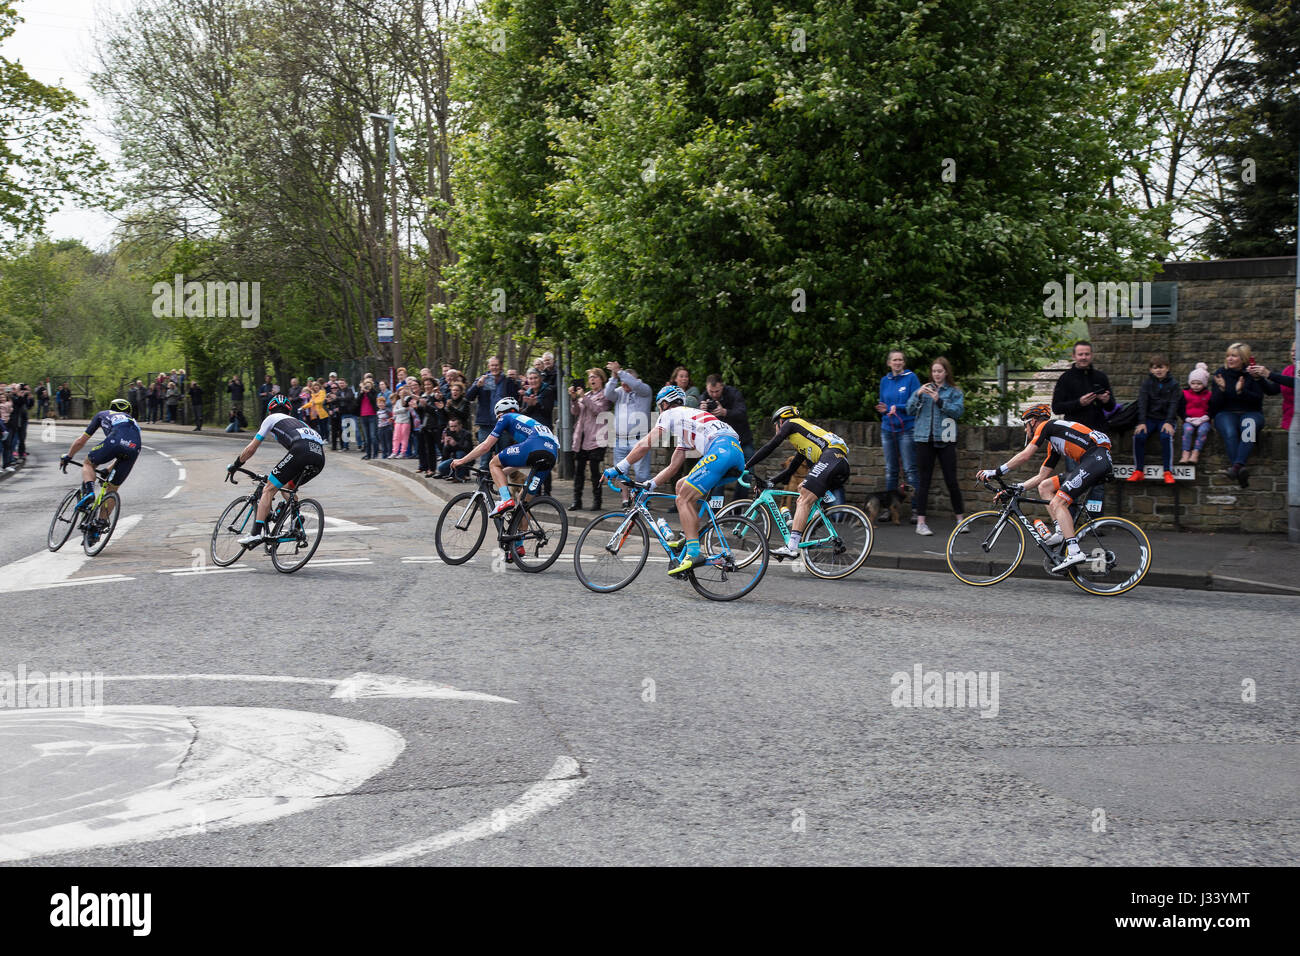 Leaders in the Tour de Yorkshire cycling event - Stock Image